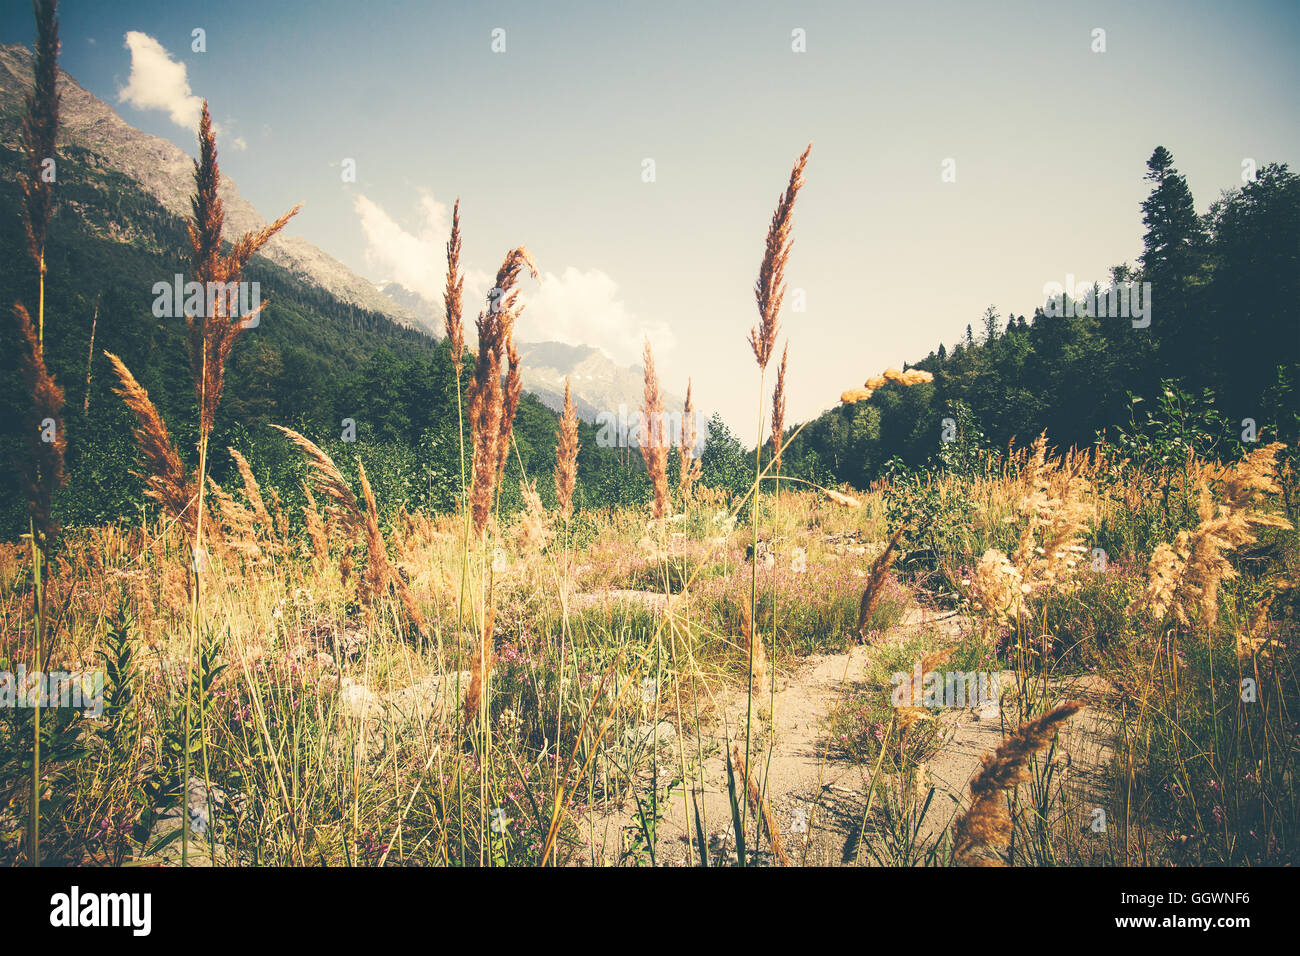 Summer Landscape valley and forest in mountains serene scenic view - Stock Image